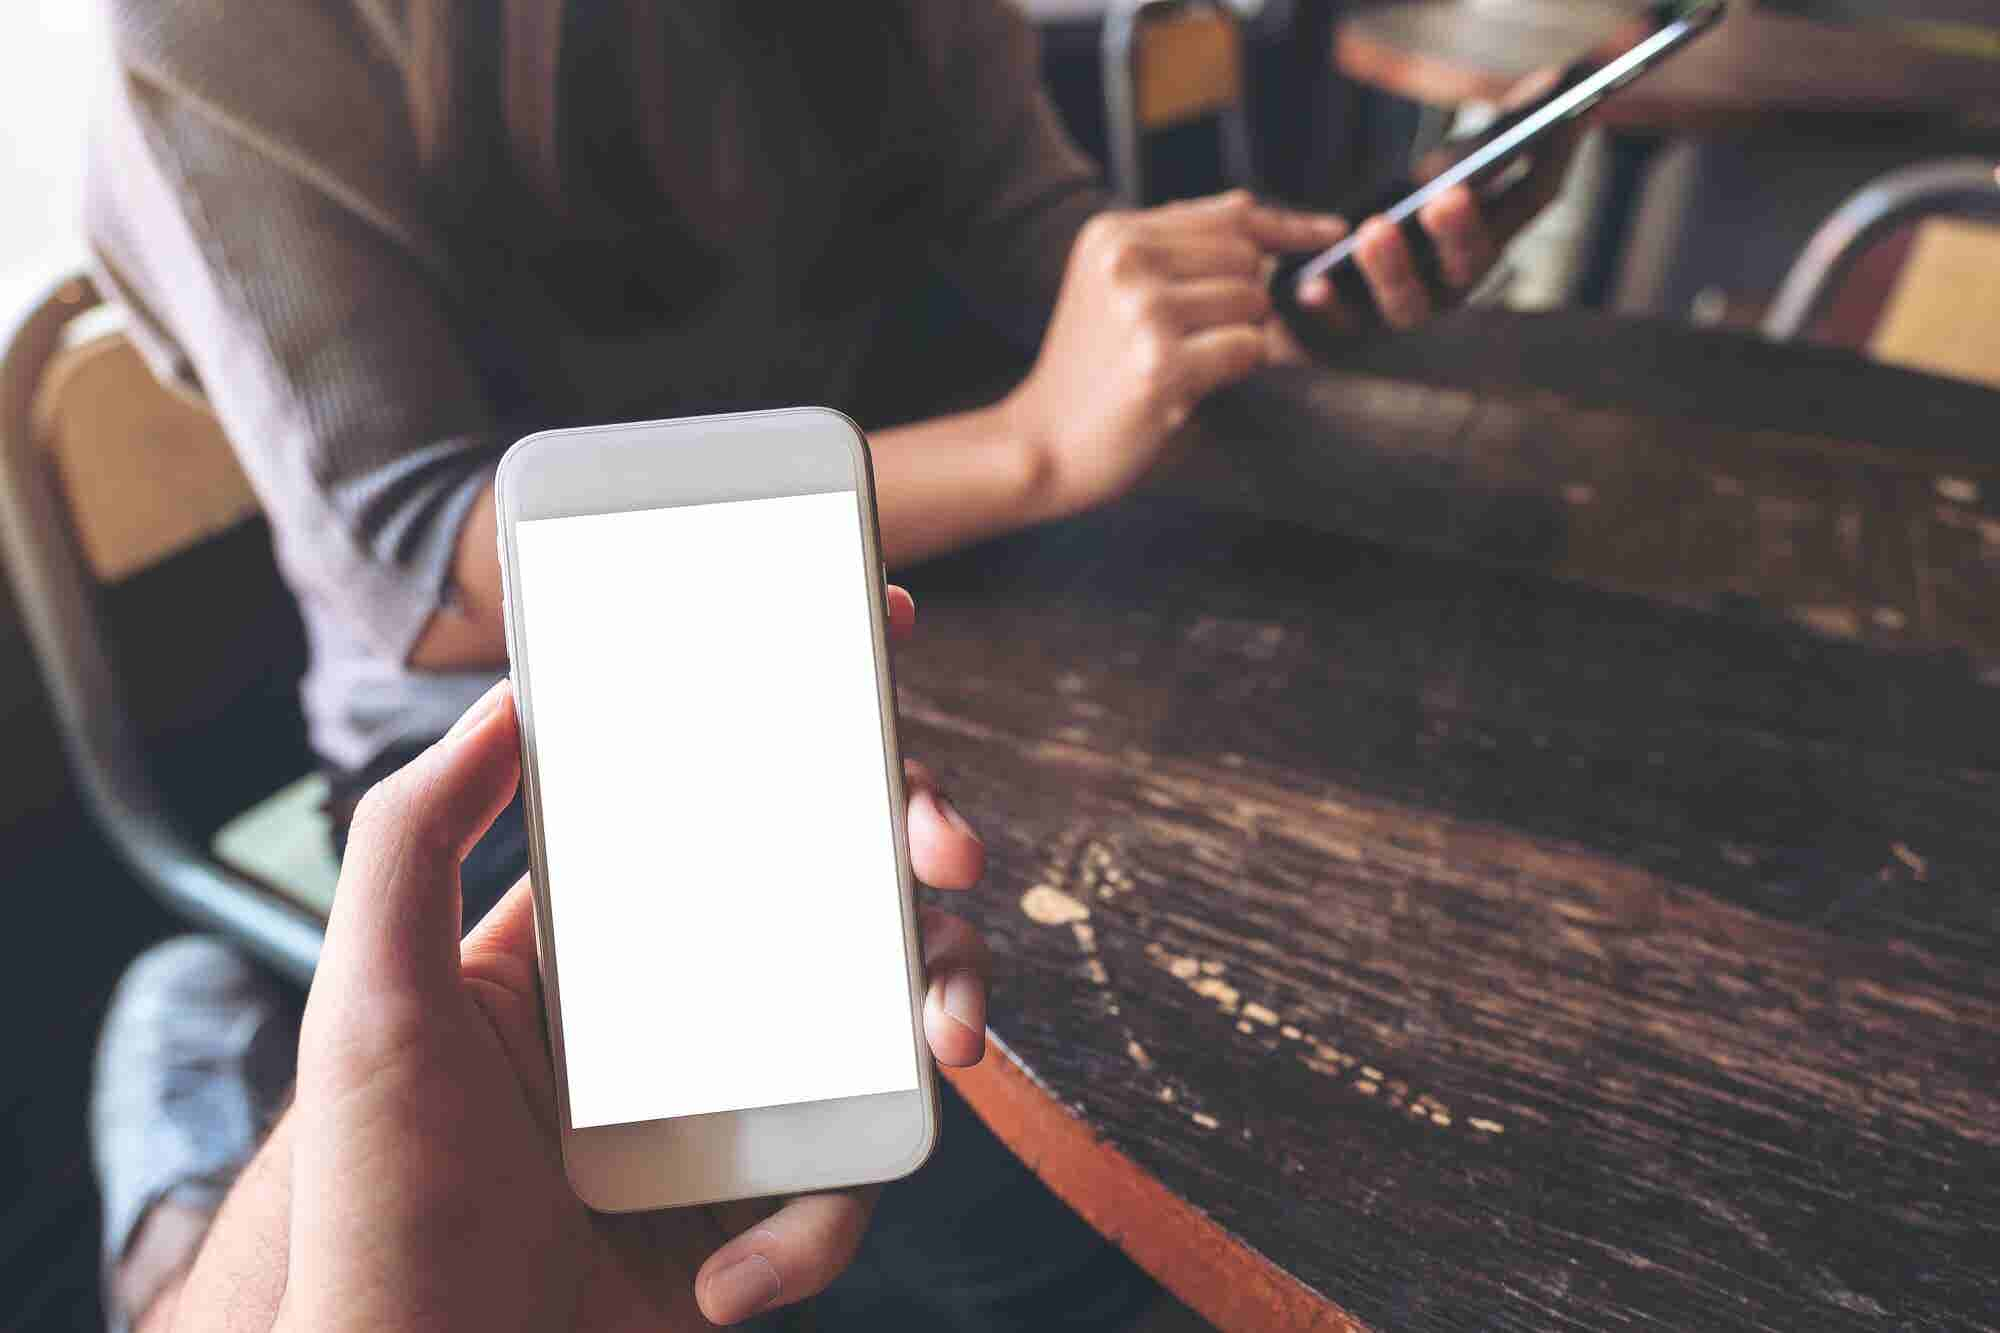 How Phone Screen Sharing Could Launch New Billion Dollar Industries